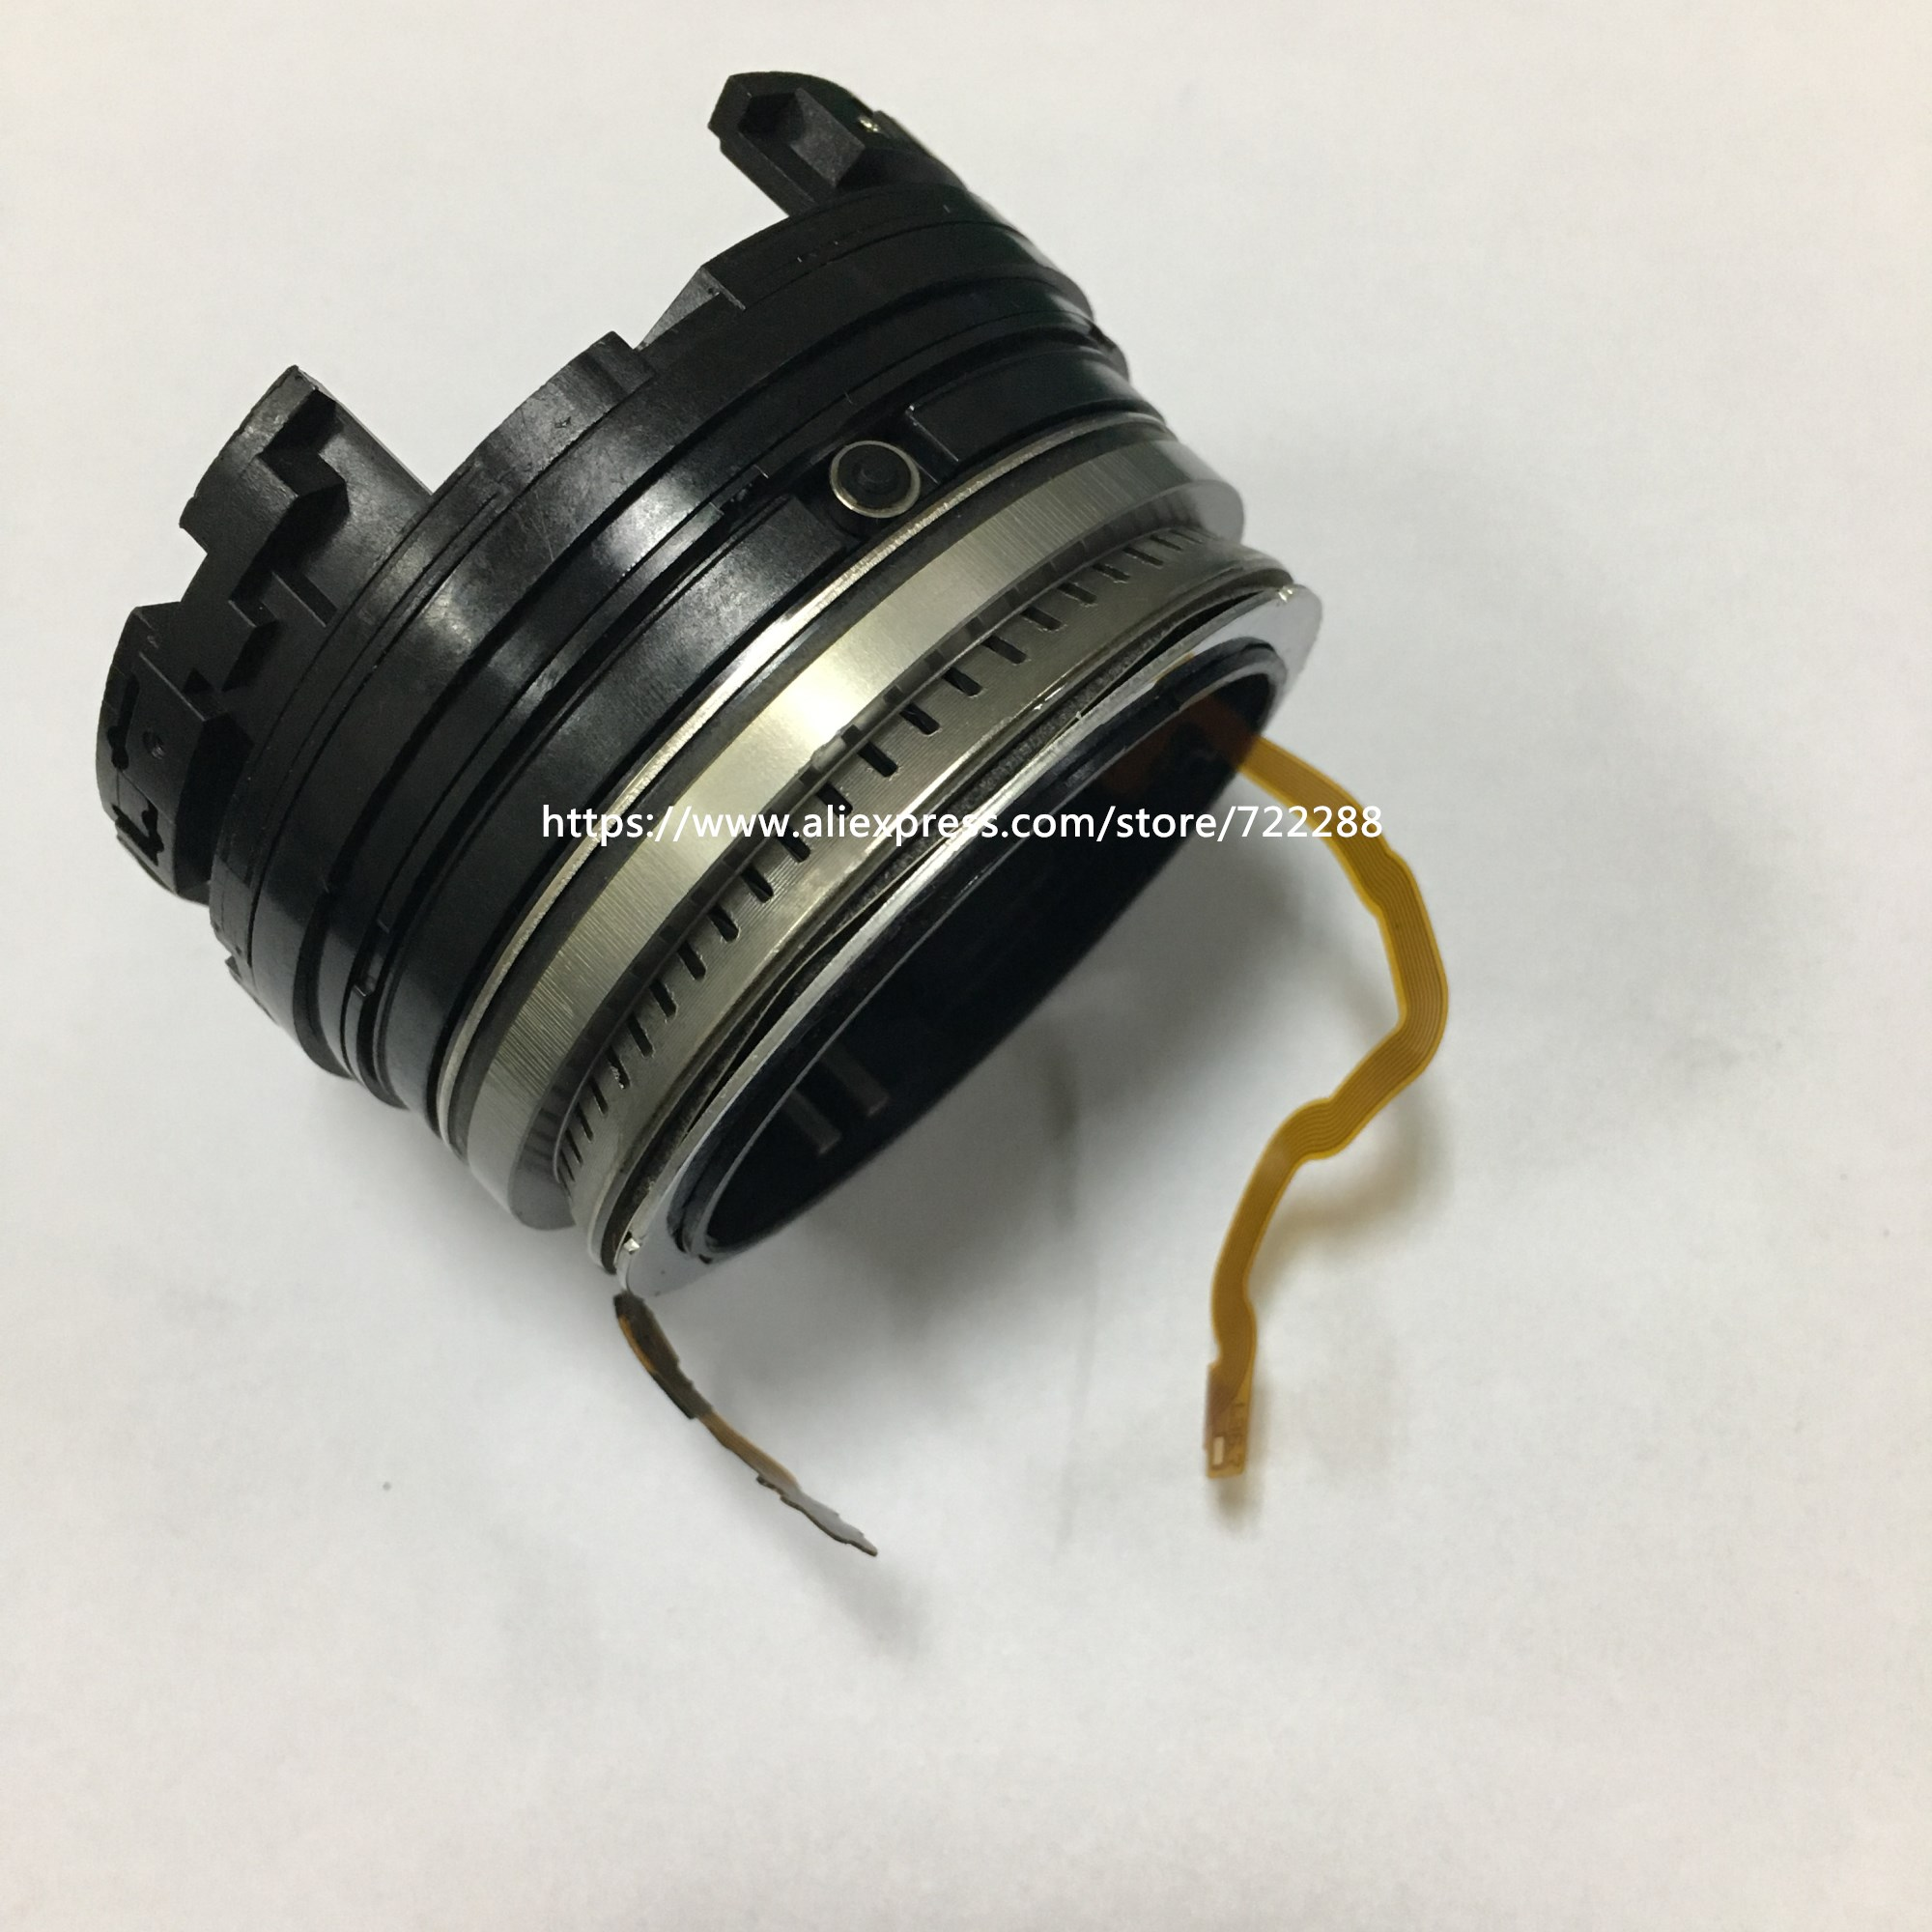 Image 2 - Repair Part For Canon EF 85mm F/1.8 USM Lens Focusing Assy AF Focus Motor Unit YG2 0057 009-in Electronics Stocks from Electronic Components & Supplies